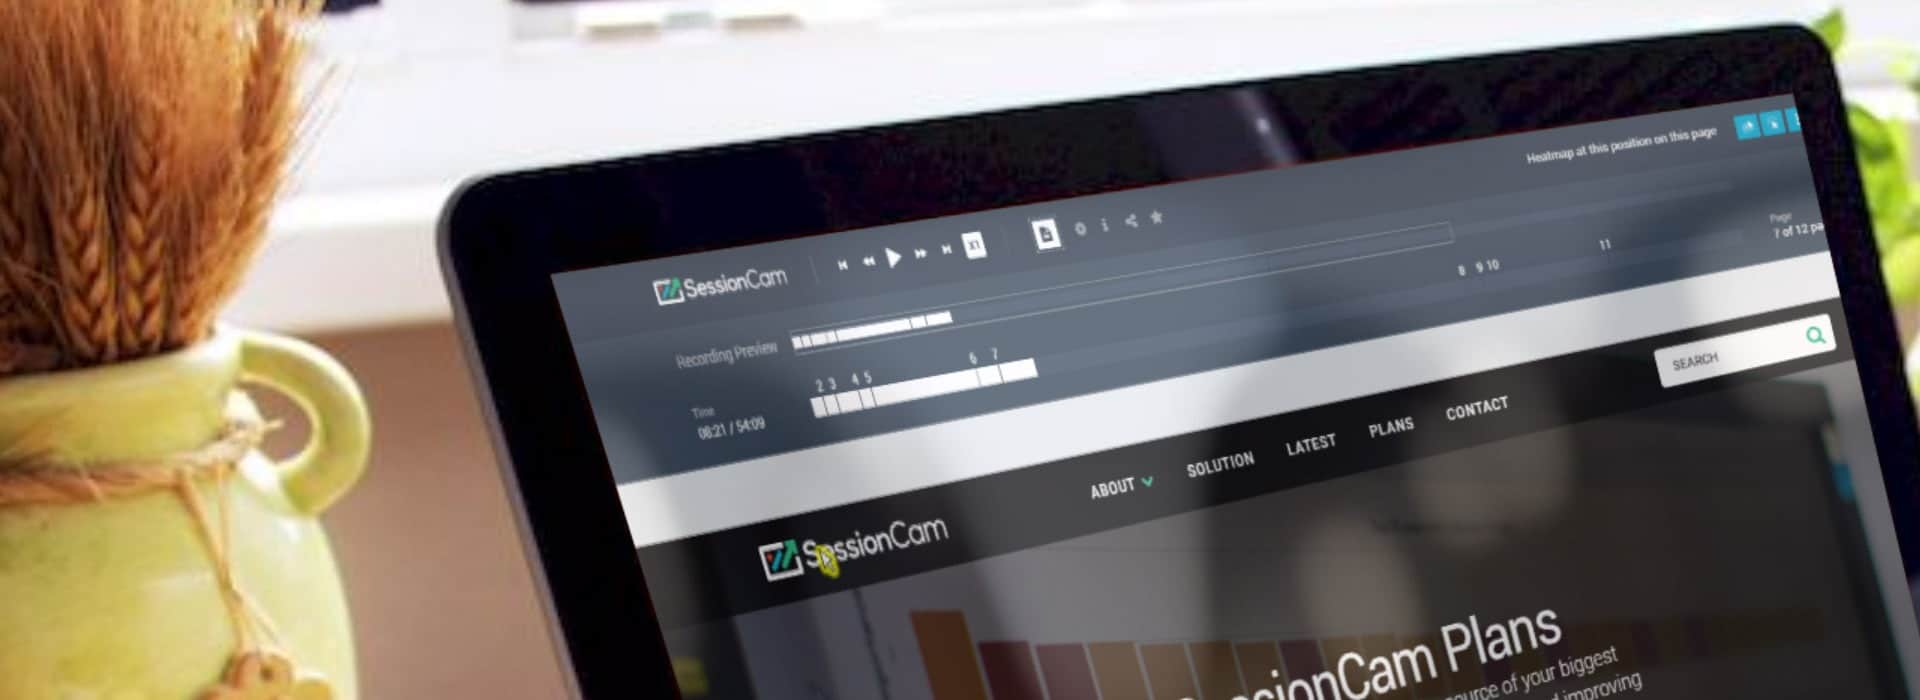 SessionCam Launches Next Generation Of Web Session Record & Replay Technology